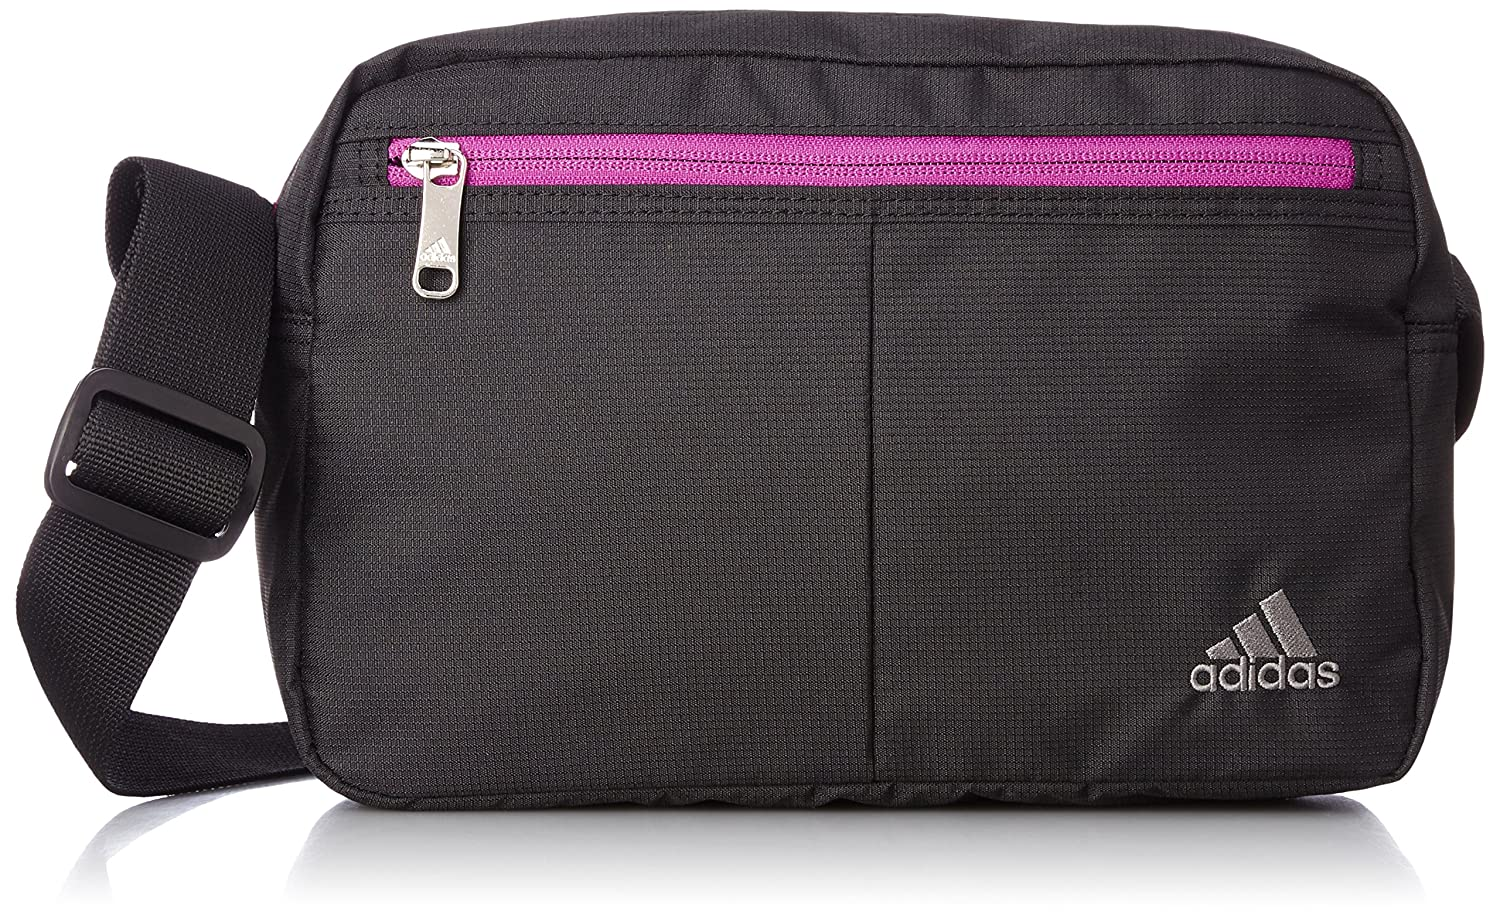 Amazon.com  adidas Shoulder bag (Pink black)  Clothing 0383ac9508e1d